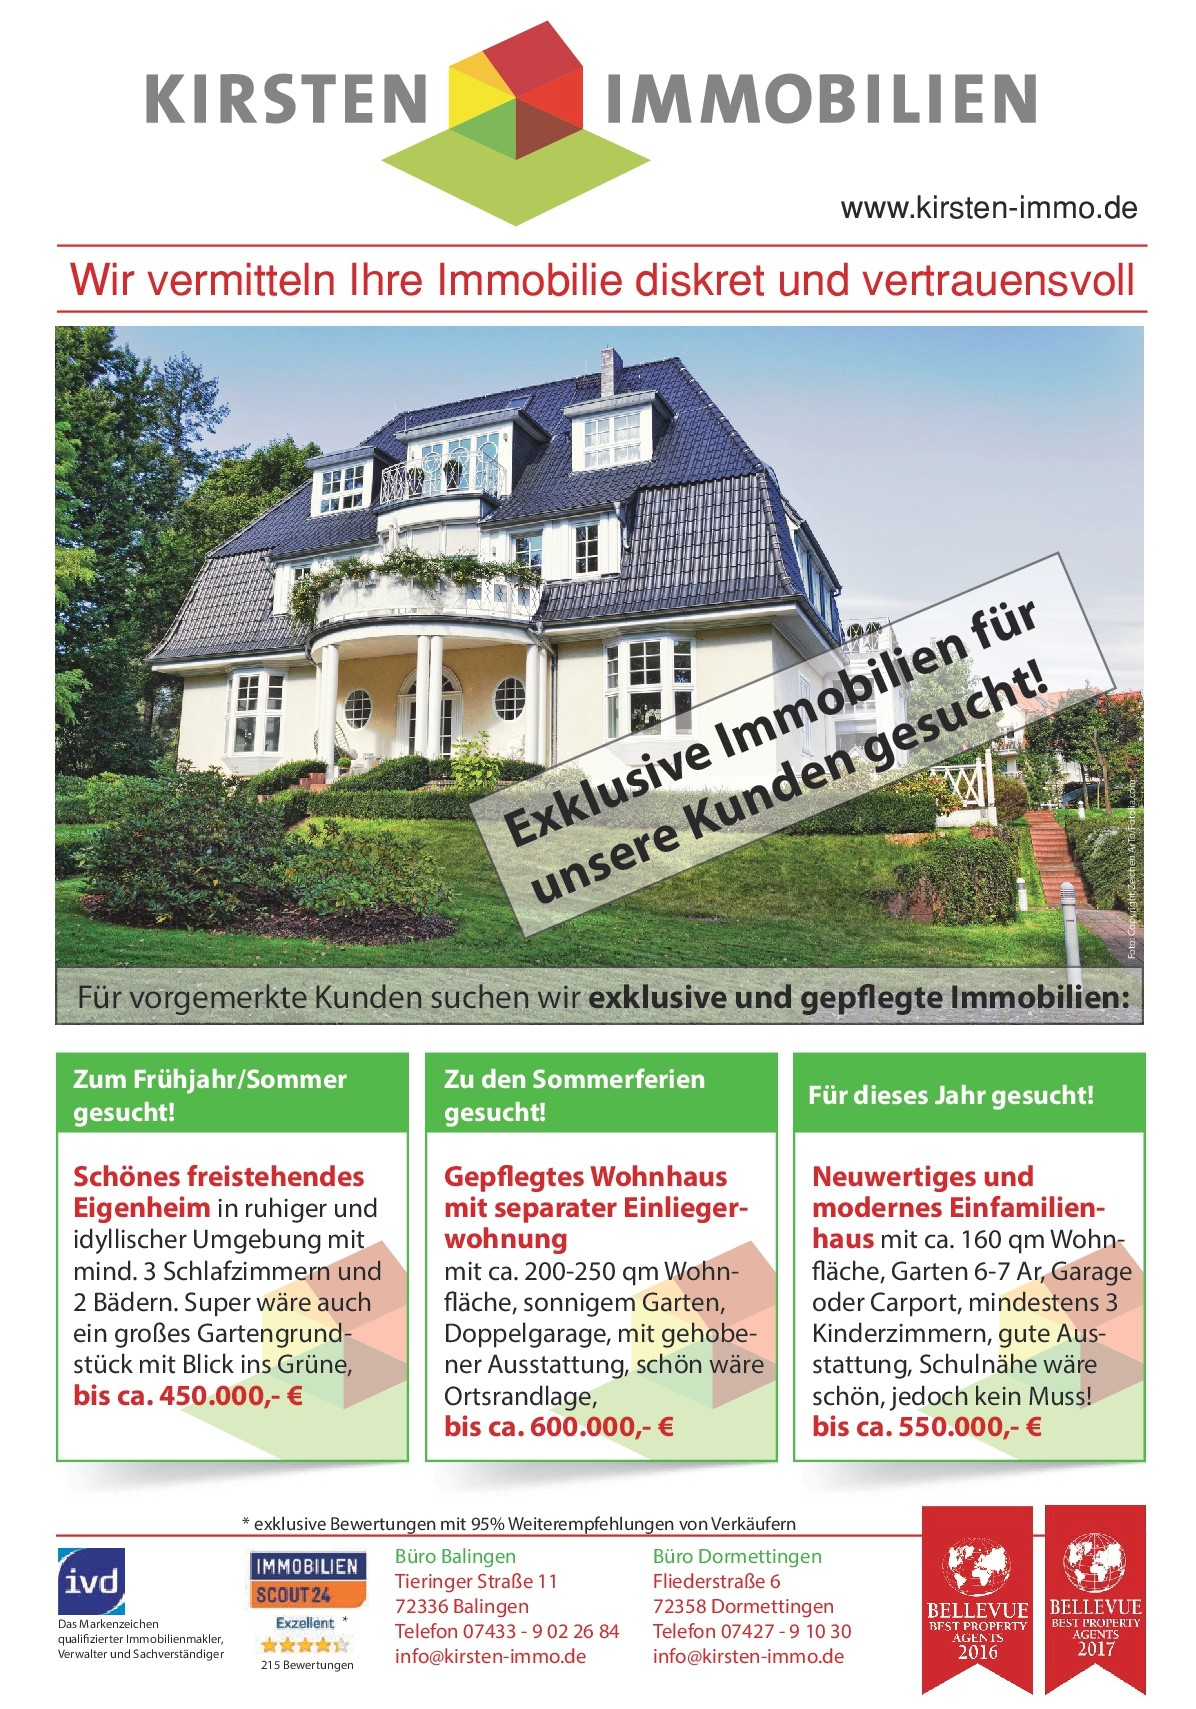 Immo Imobilien Immo Gesuche Kirsten Immobilien E K